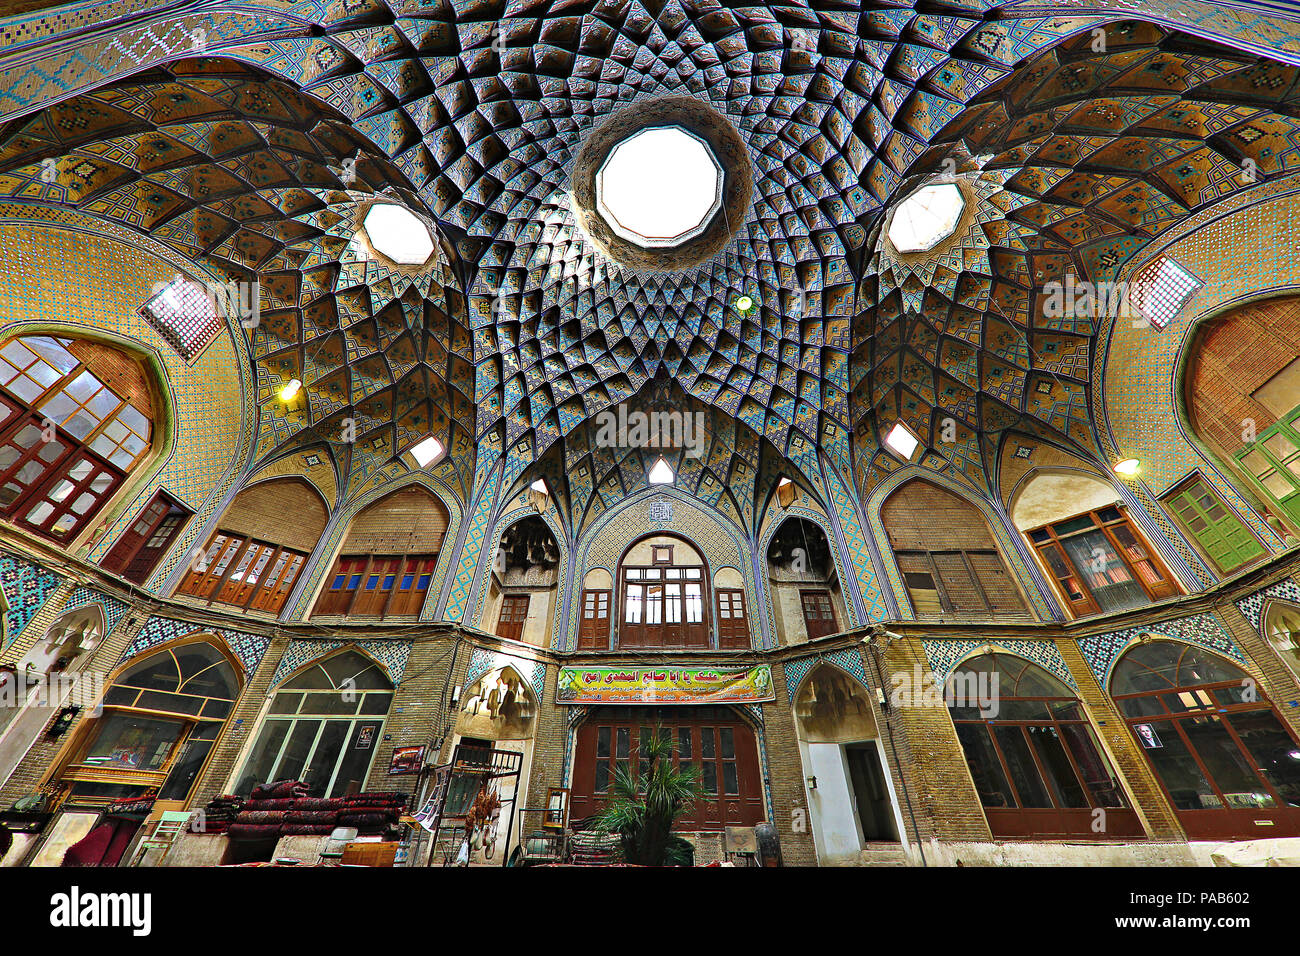 Interior of the ancient bazaar in Kashan, Iran. The bazaar was built in the 13th century and restored in the 19th cent - Stock Image